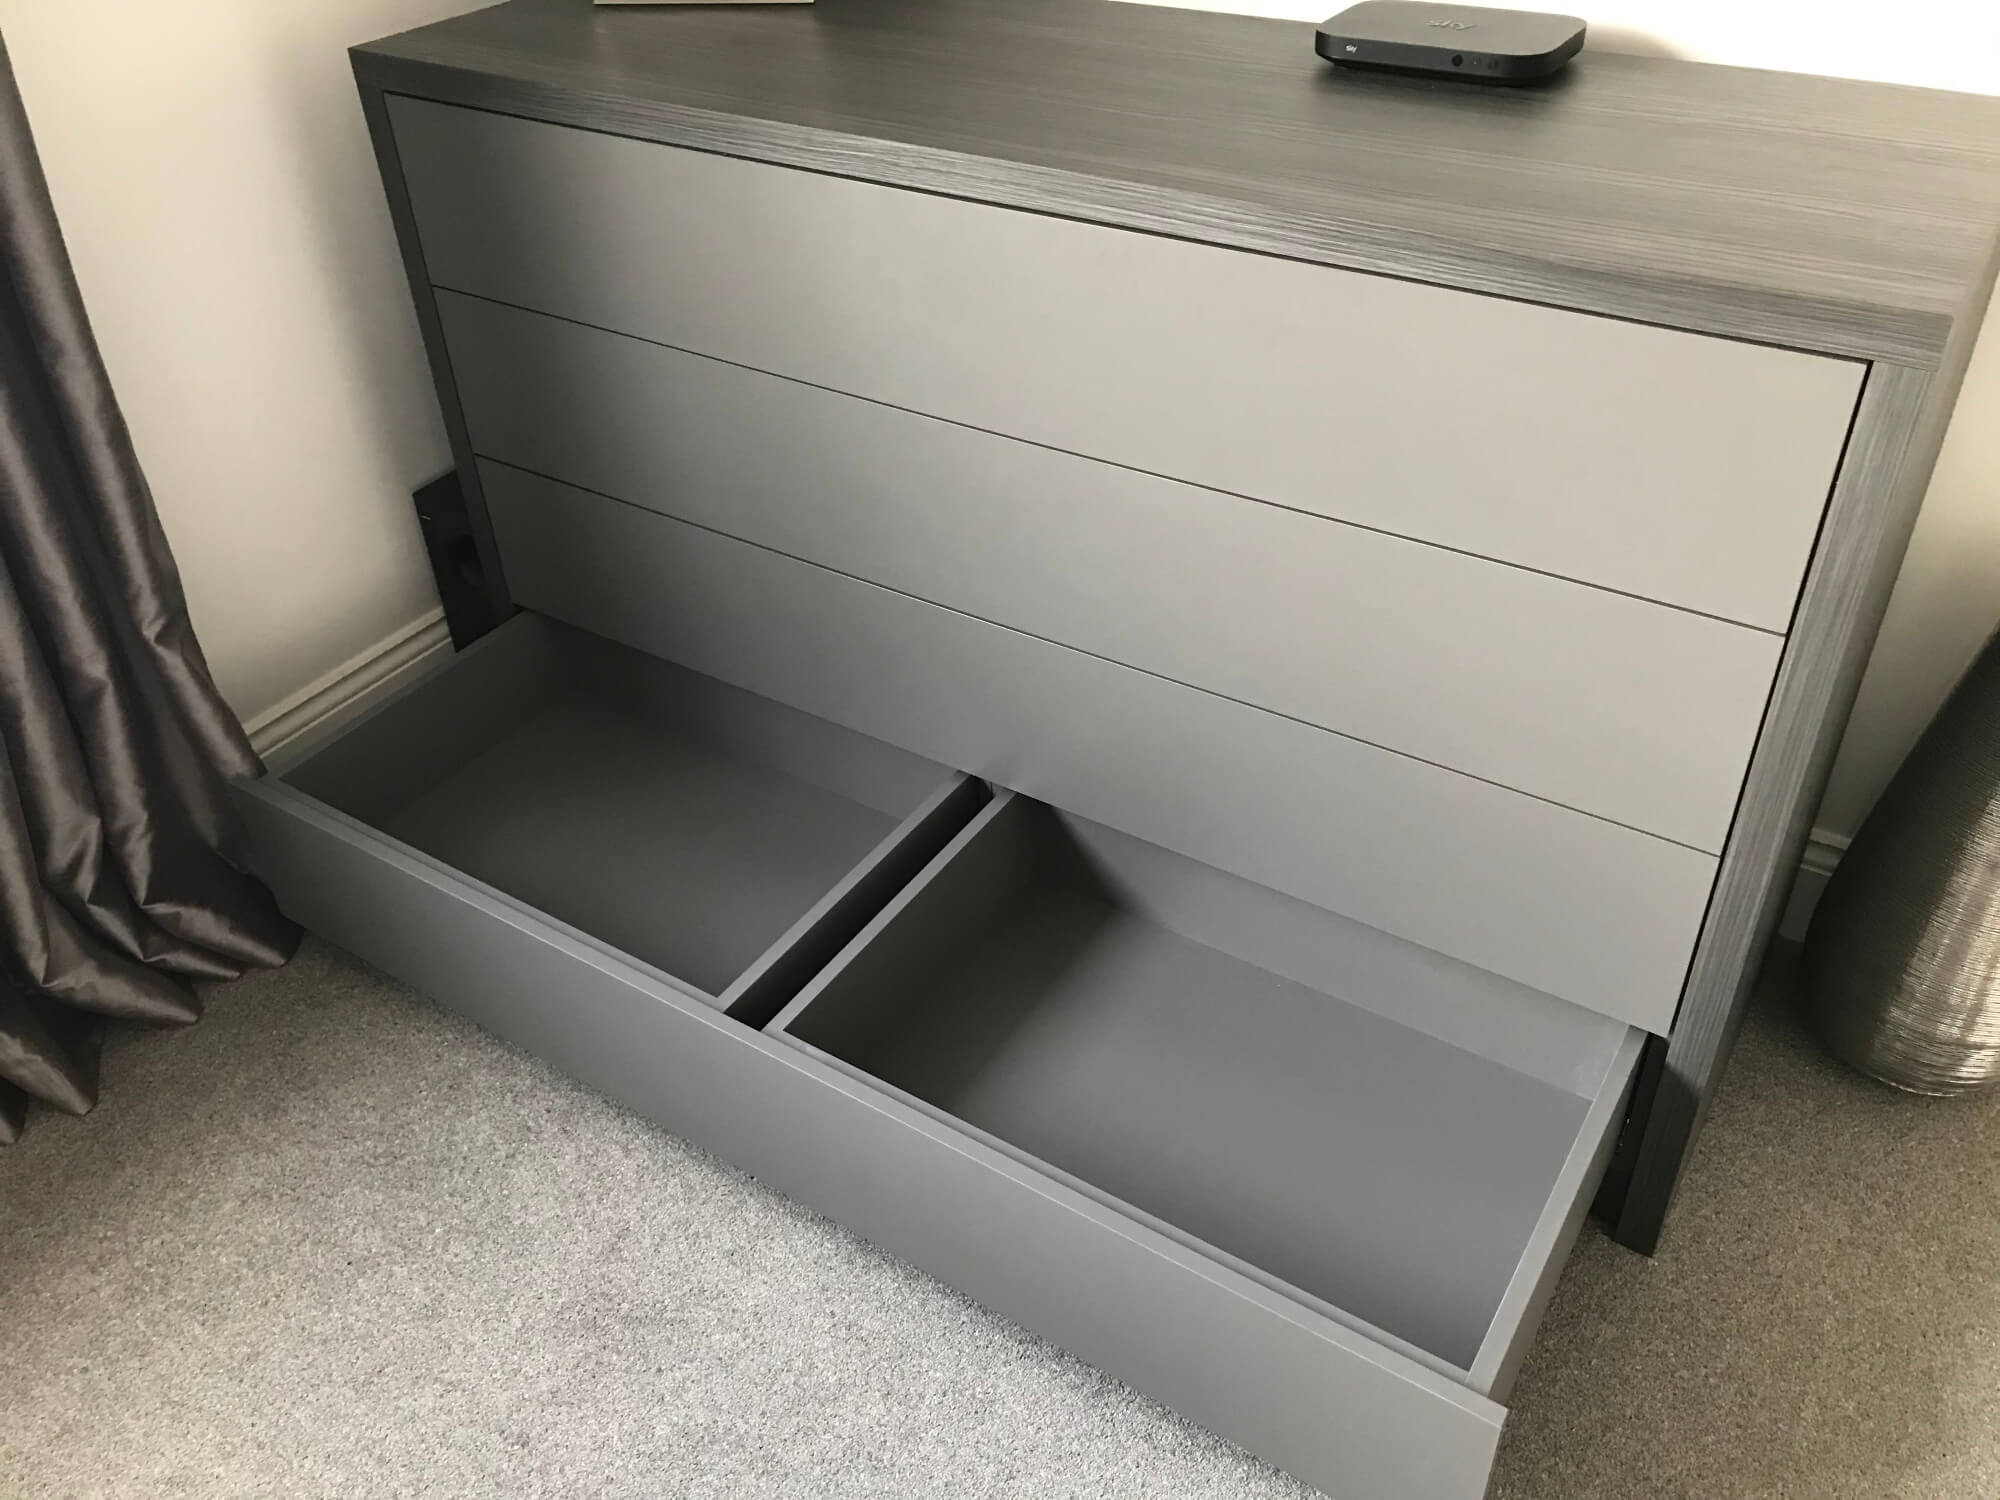 Push to open drawers